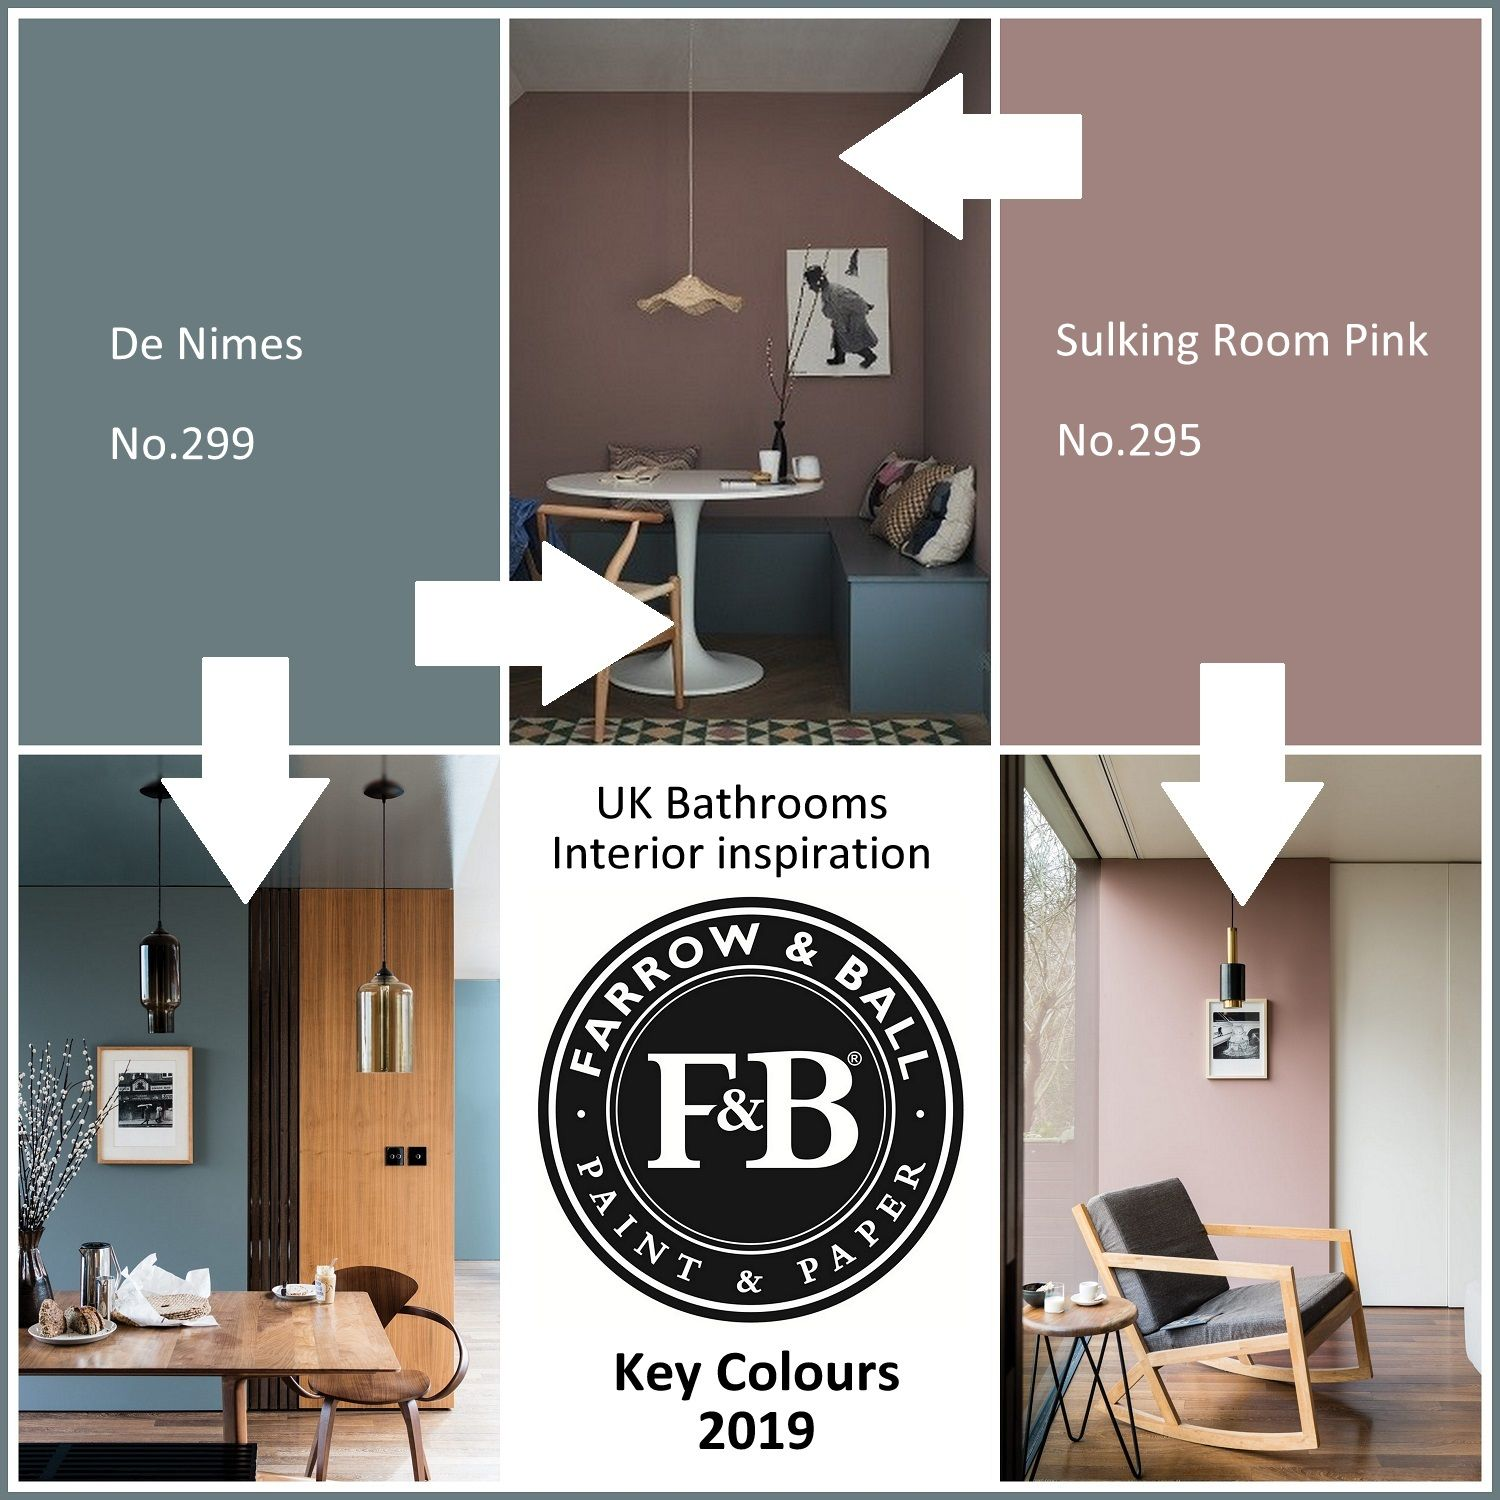 Farrow And Ball Colours For 2019 De Nimes No 299 Sulking Room Pink No 295 Why Not Specif Farrow And Ball Living Room Paint Colors For Home Pink Living Room